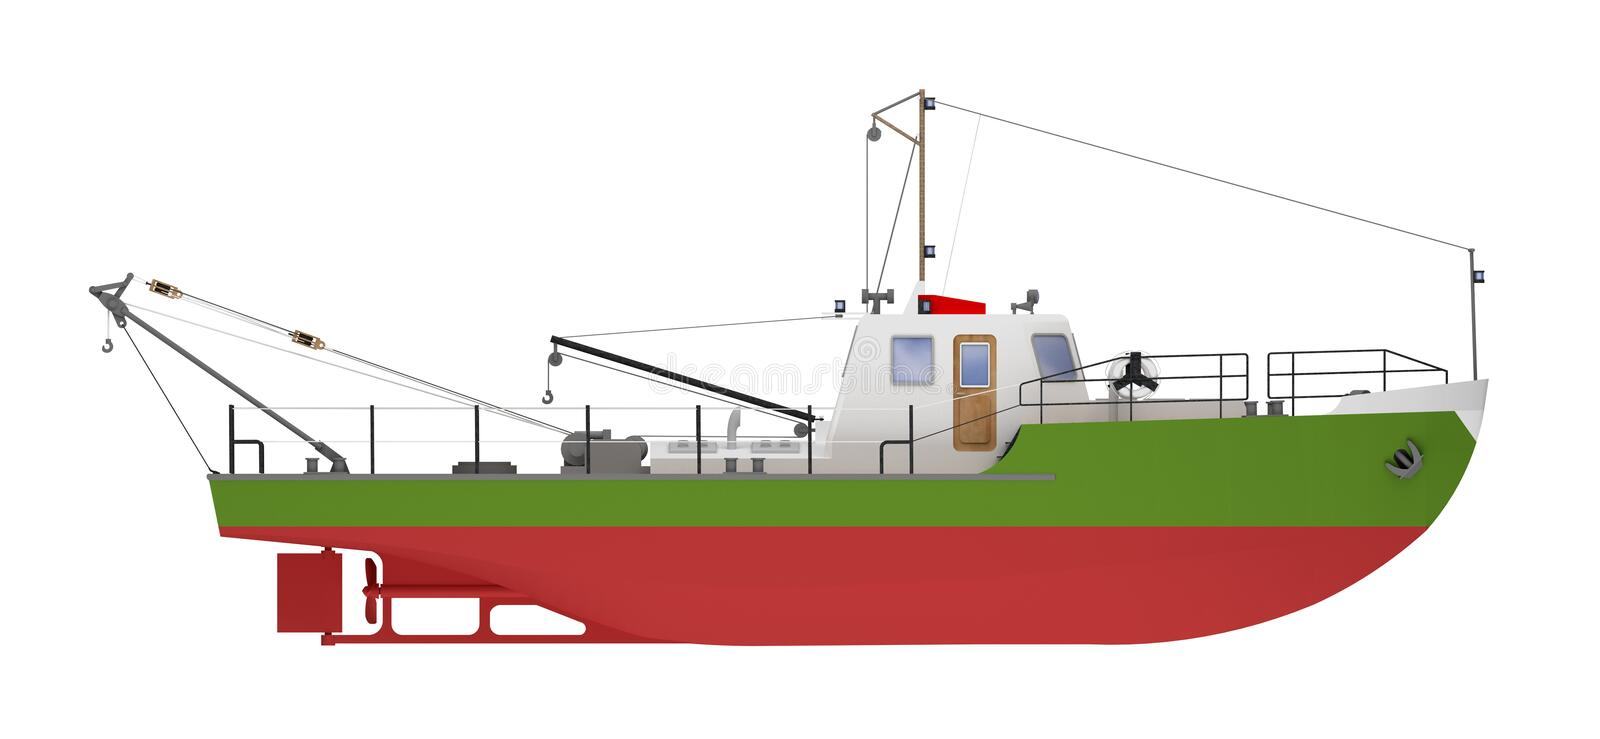 Boat towing side view isolated on white royalty free illustration